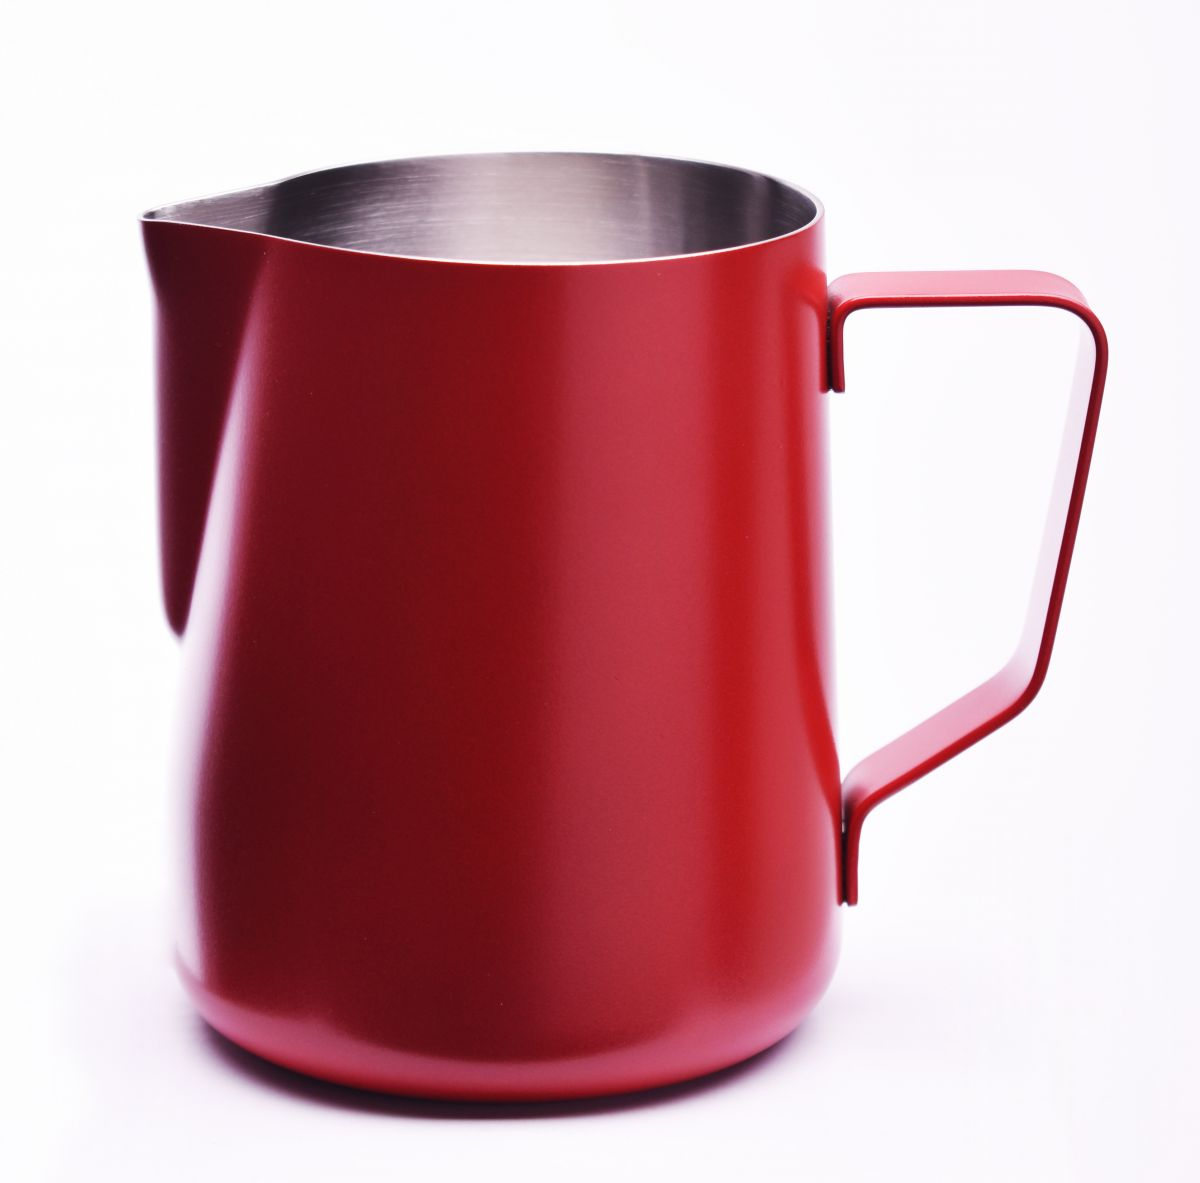 Joe Frex Milk Pitcher powder coated Red 350 ml